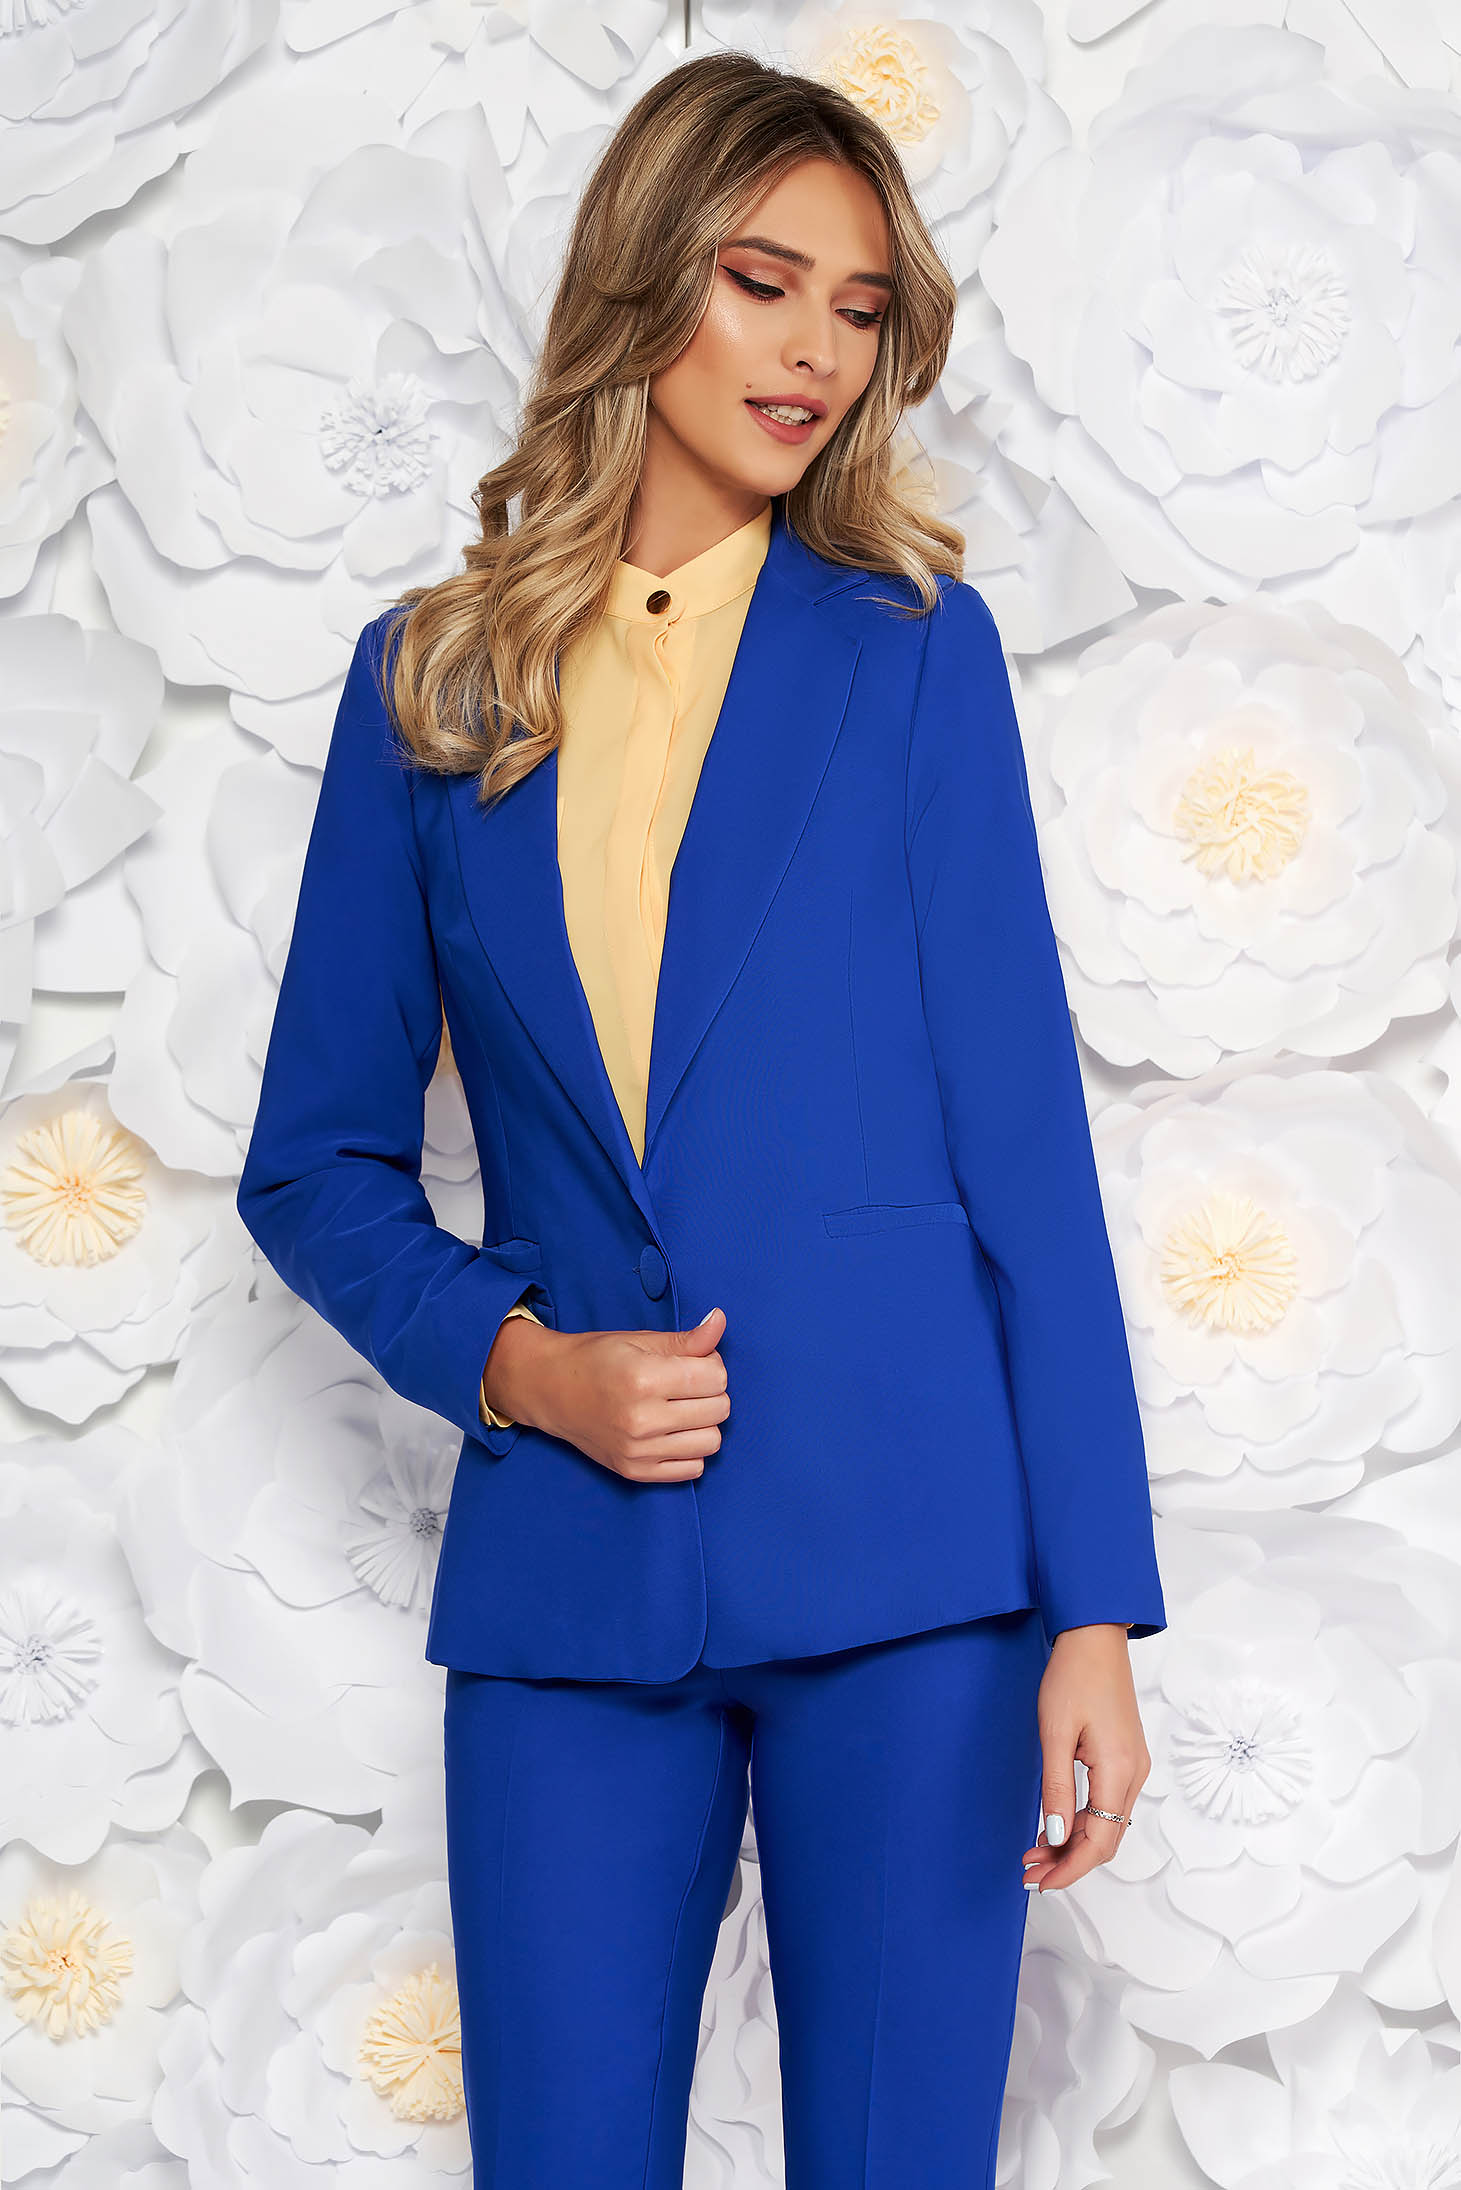 Artista blue jacket with inside lining office from non elastic fabric arched cut